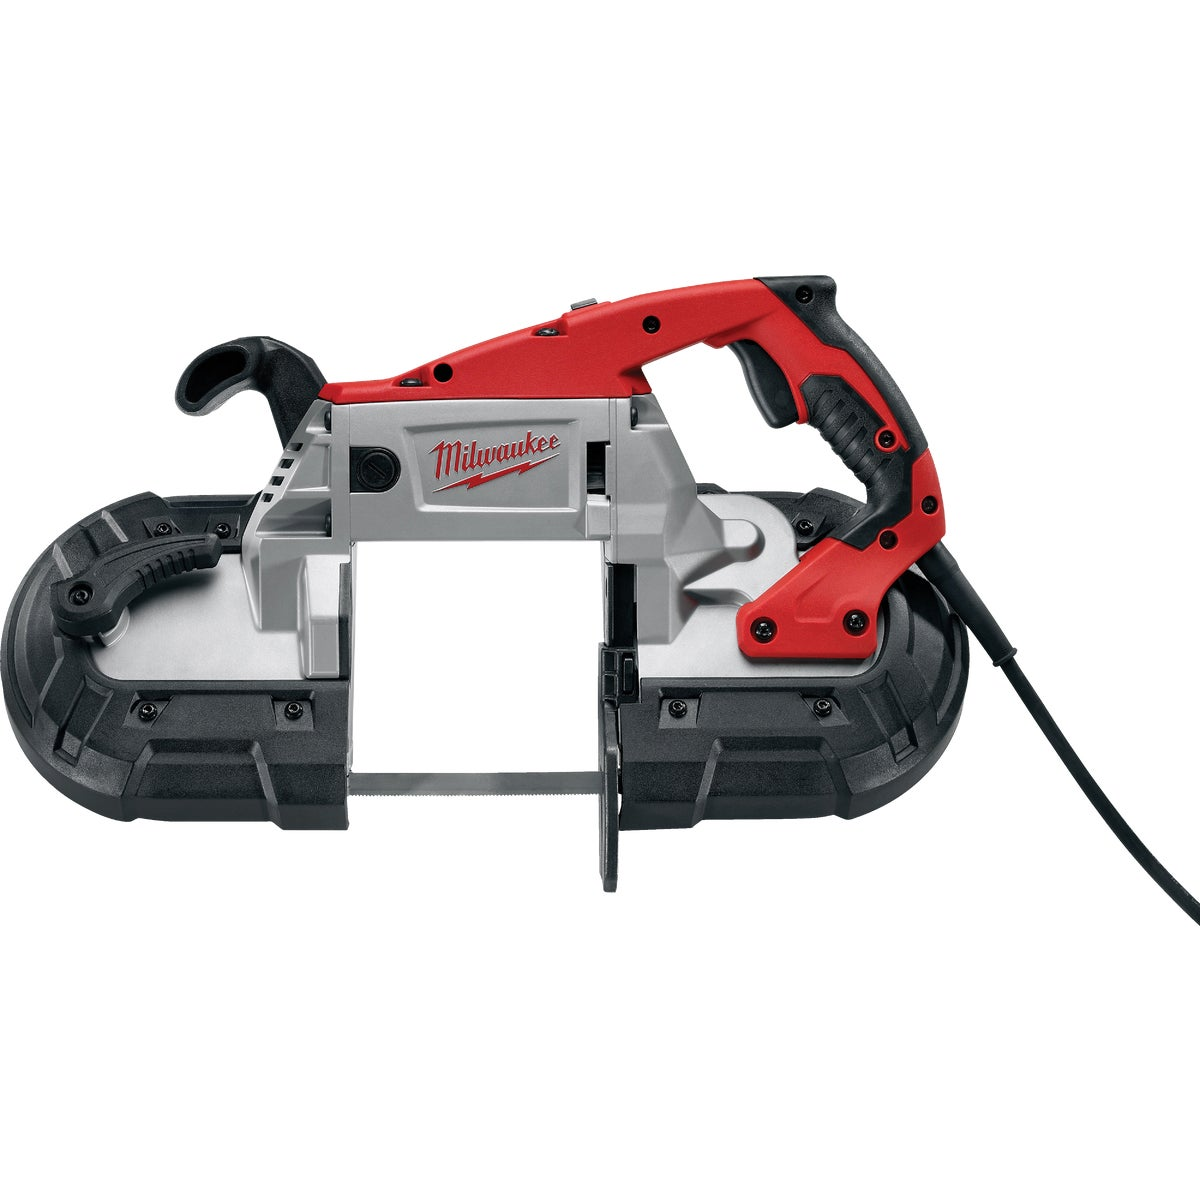 DEEP CUT BAND SAW - 6238-21 by Milwaukee Elec Tool